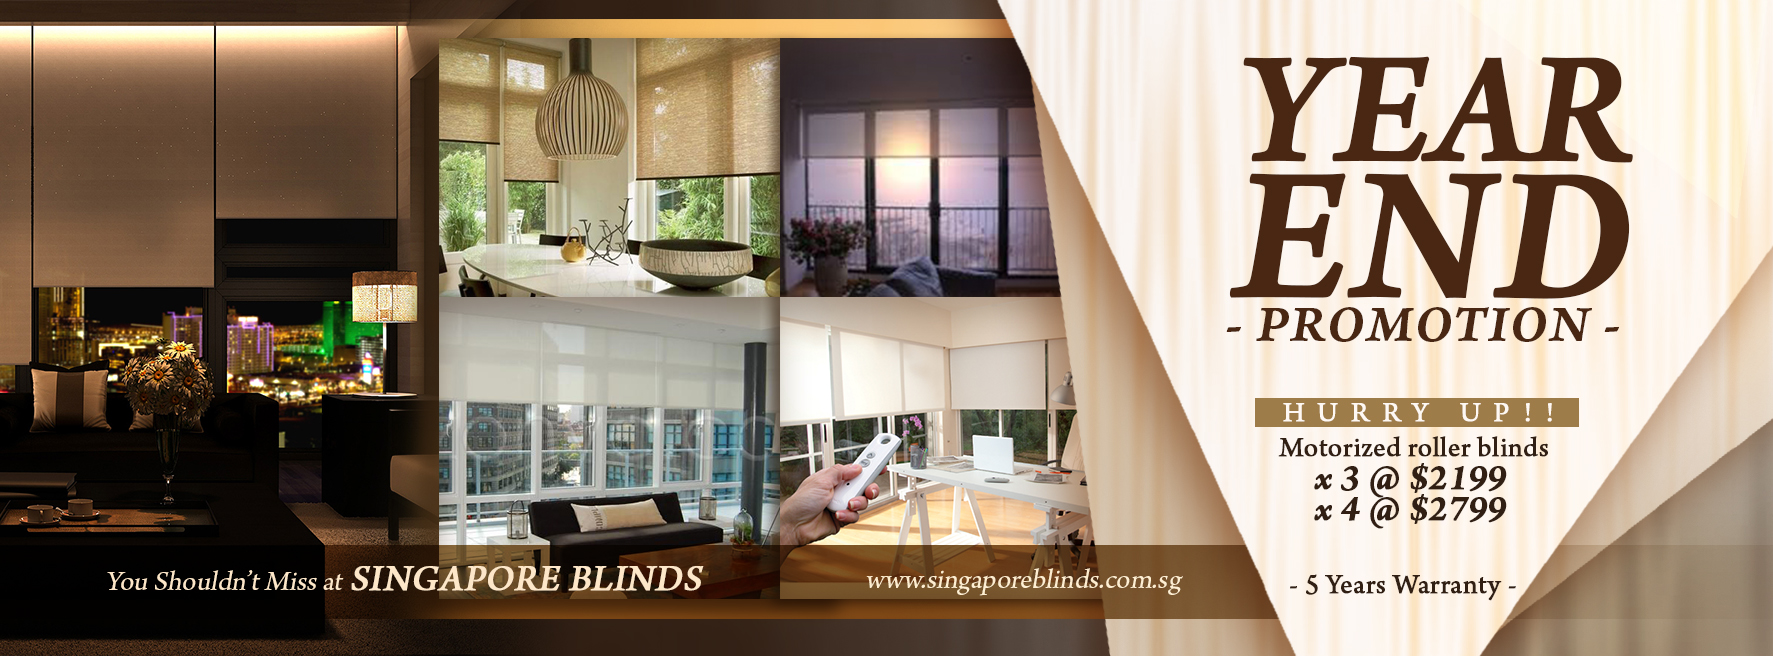 Motorized Roller Blinds Promo